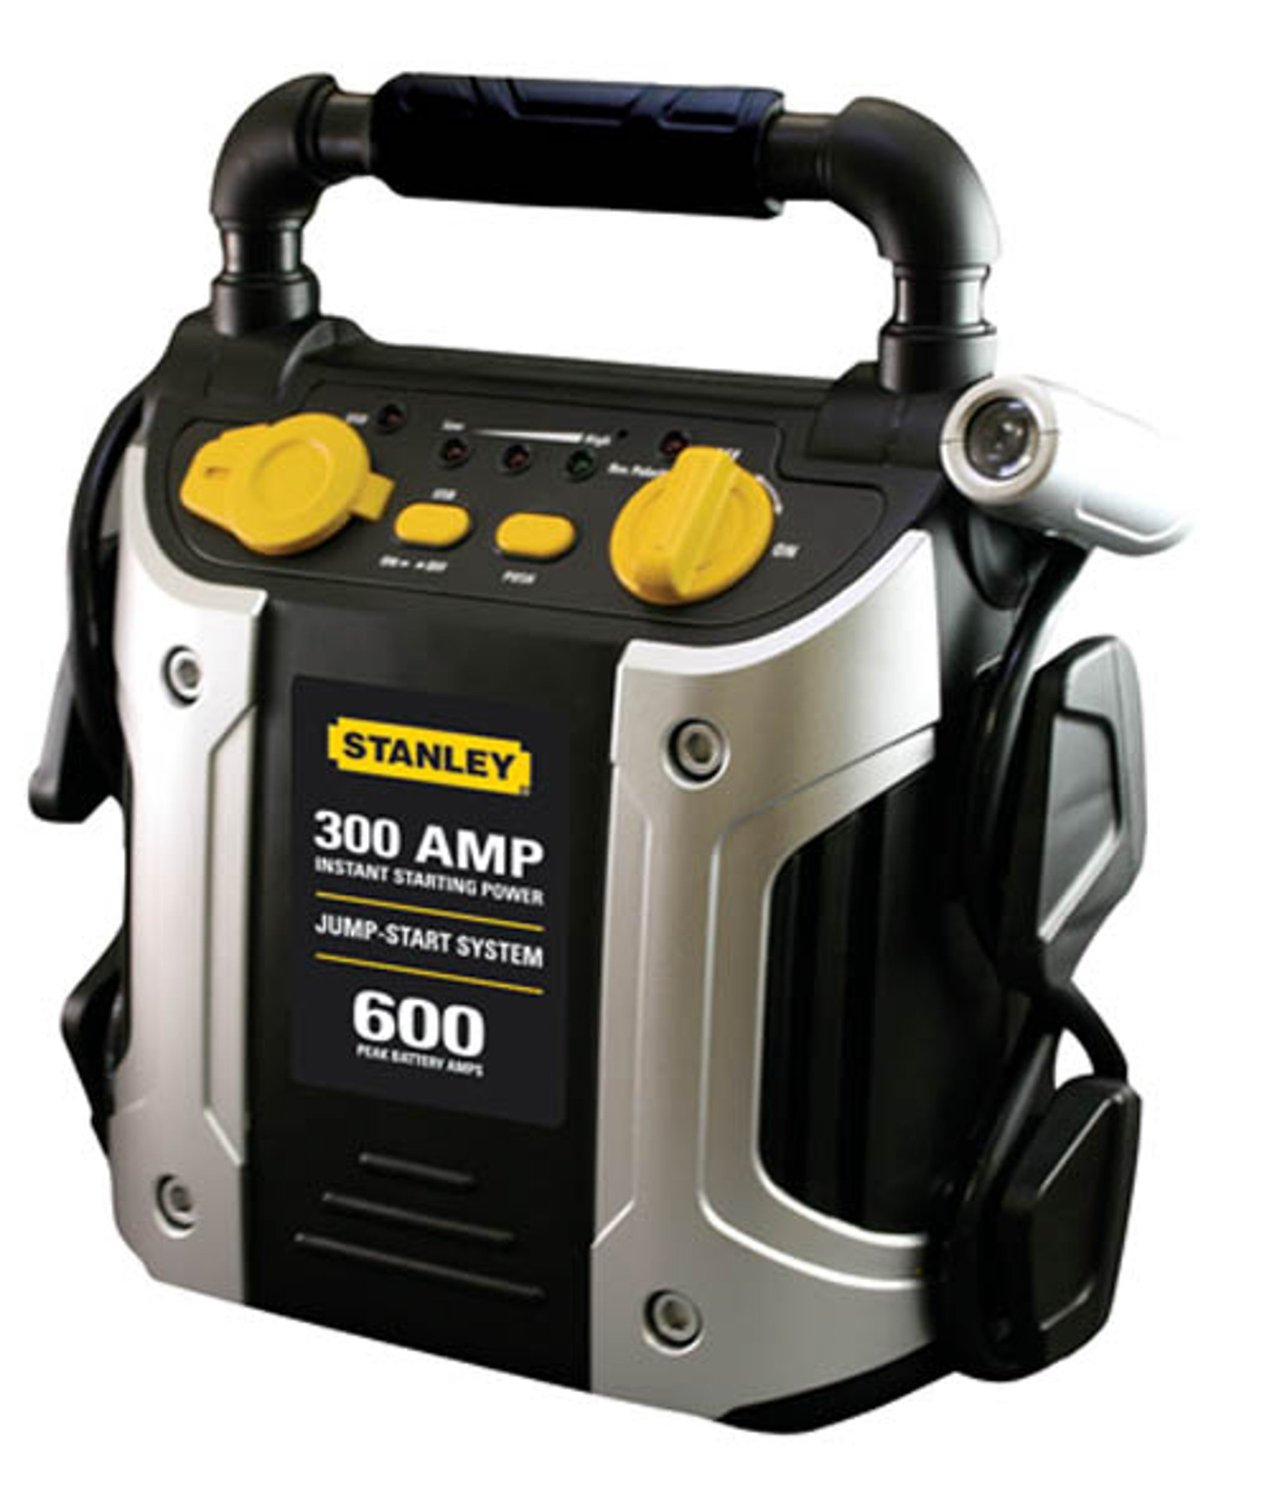 Stanley J309 Jump Starter Review